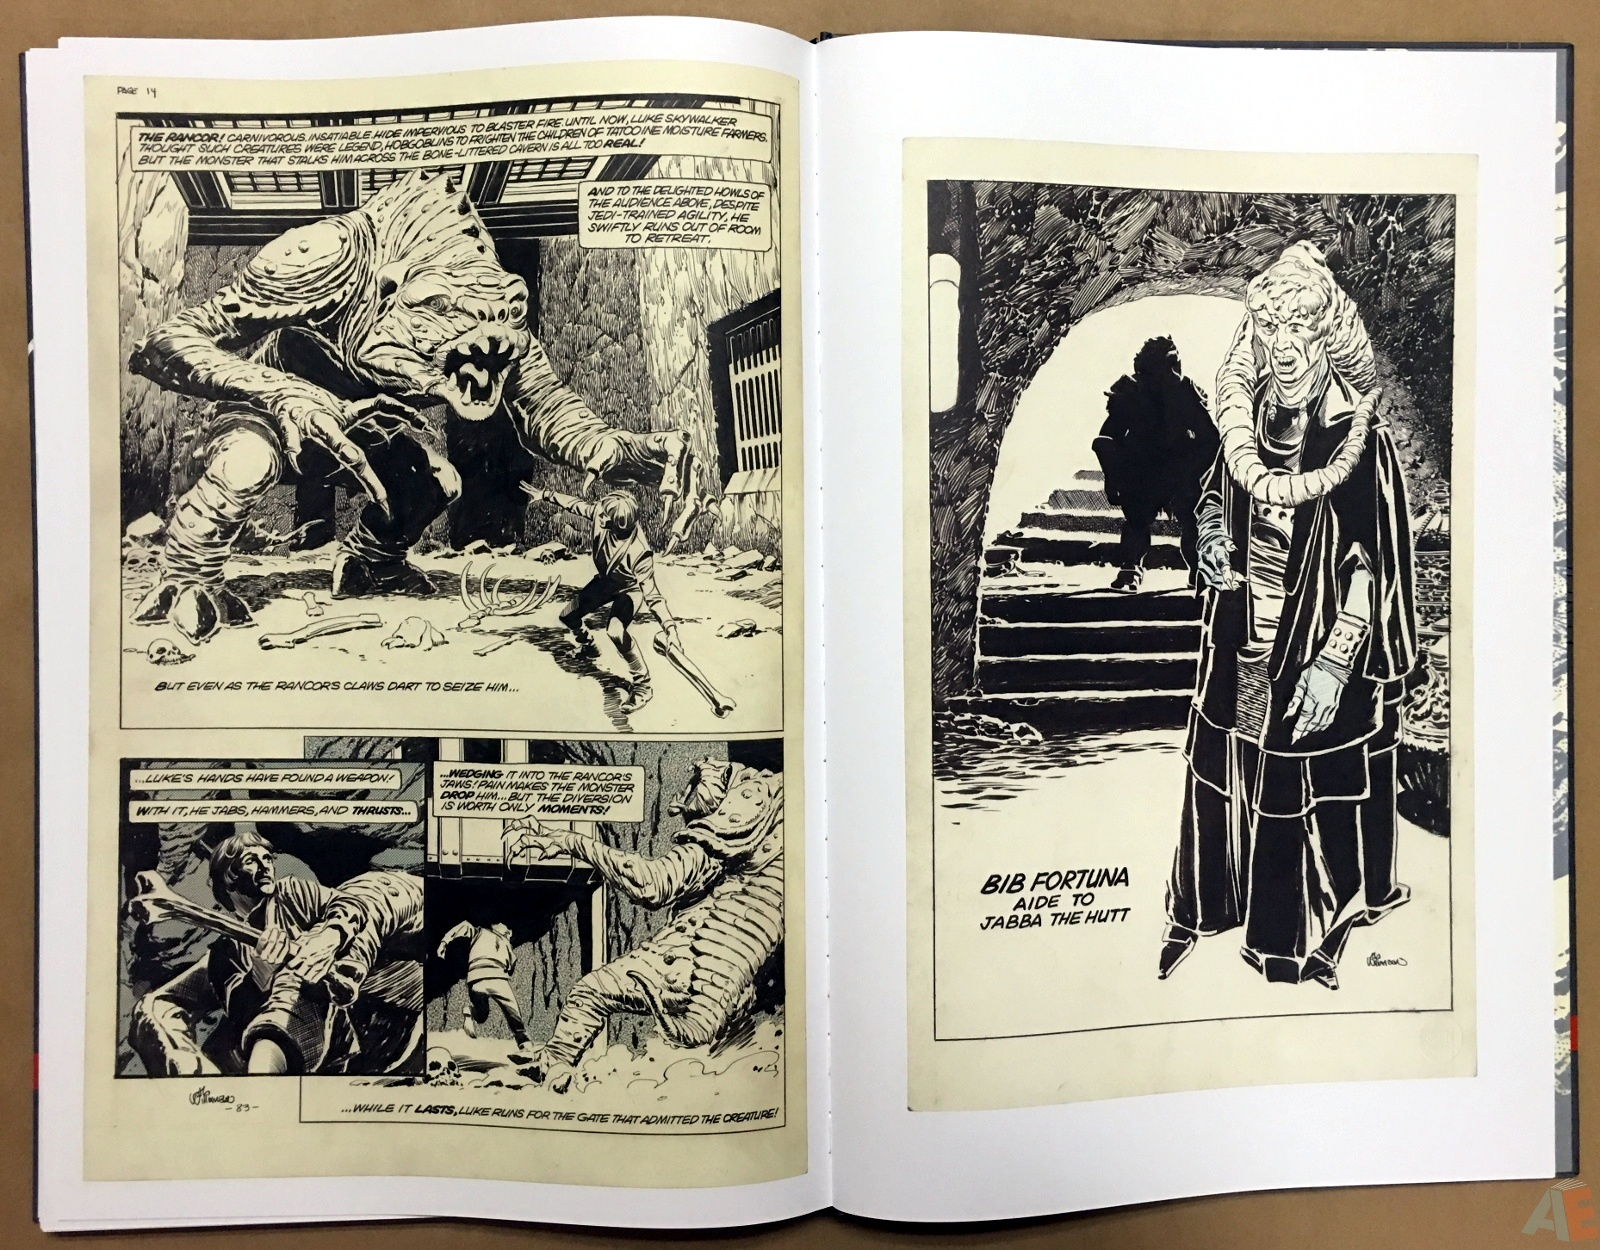 Al Williamson's Star Wars: The Empire Strikes Back Artist's Edition 48